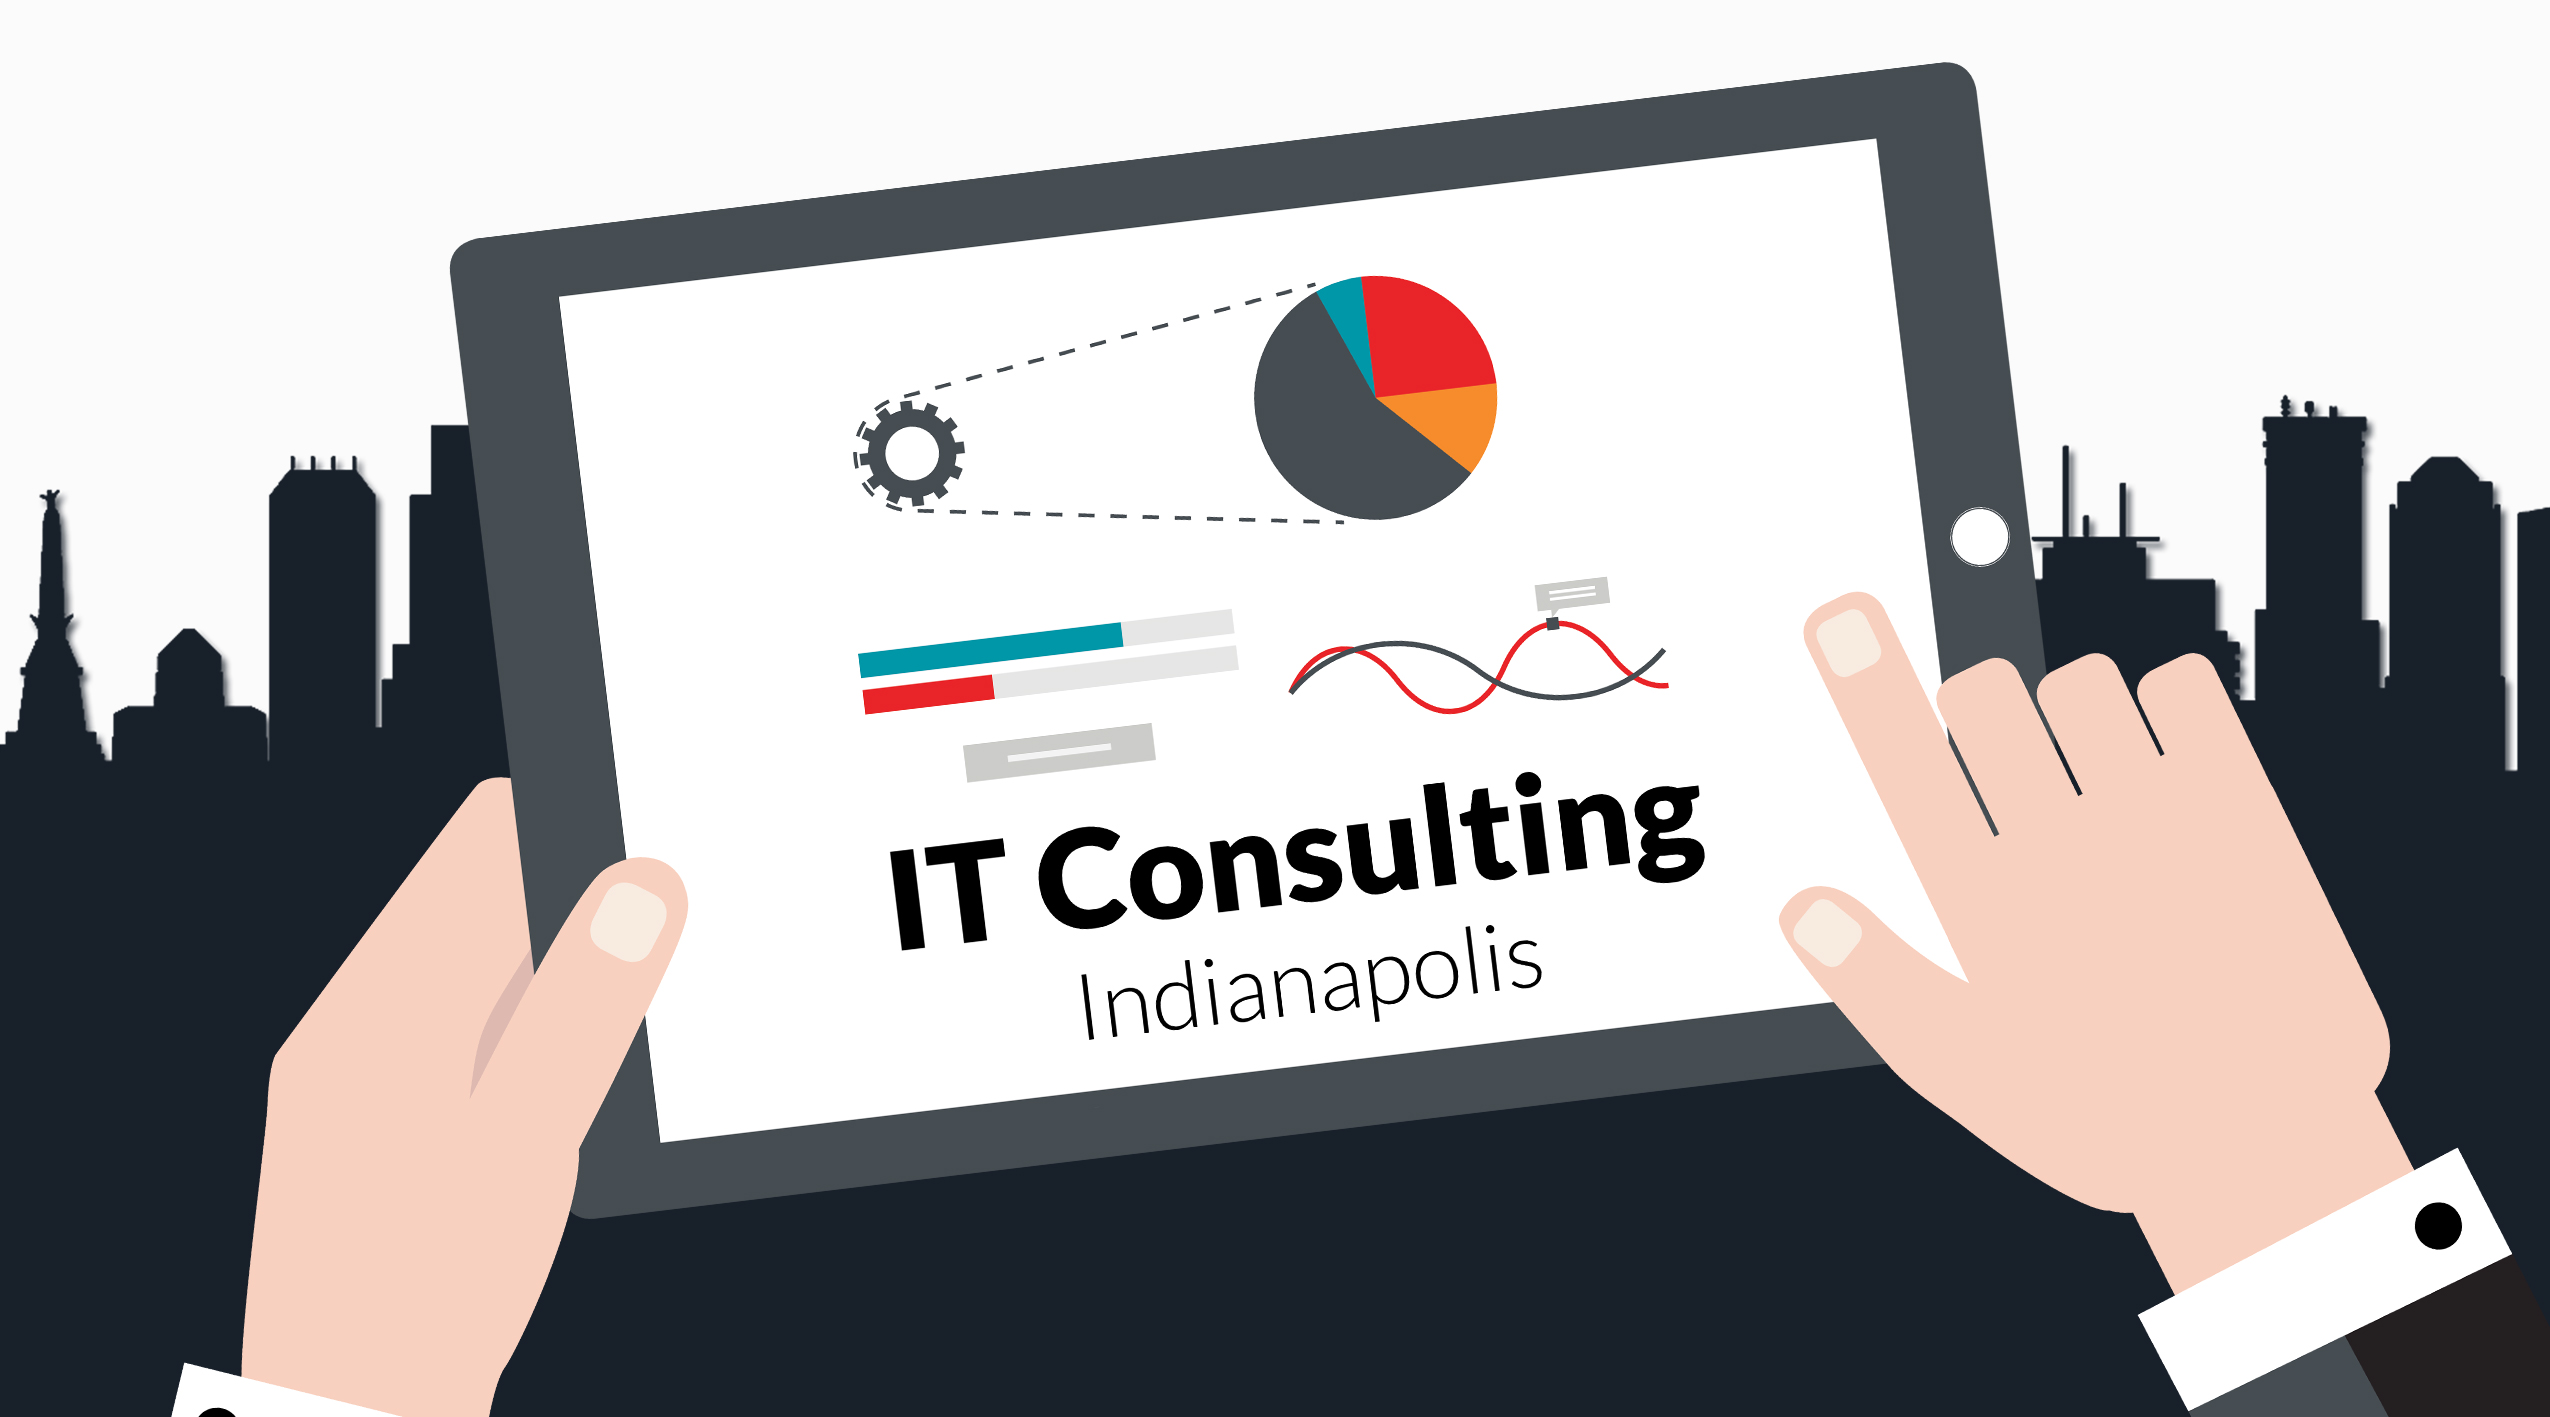 IT Consulting Indianapolis Firm, IT Services in Fishers, Noblesville, Carmel, Muncie, , Help Desk